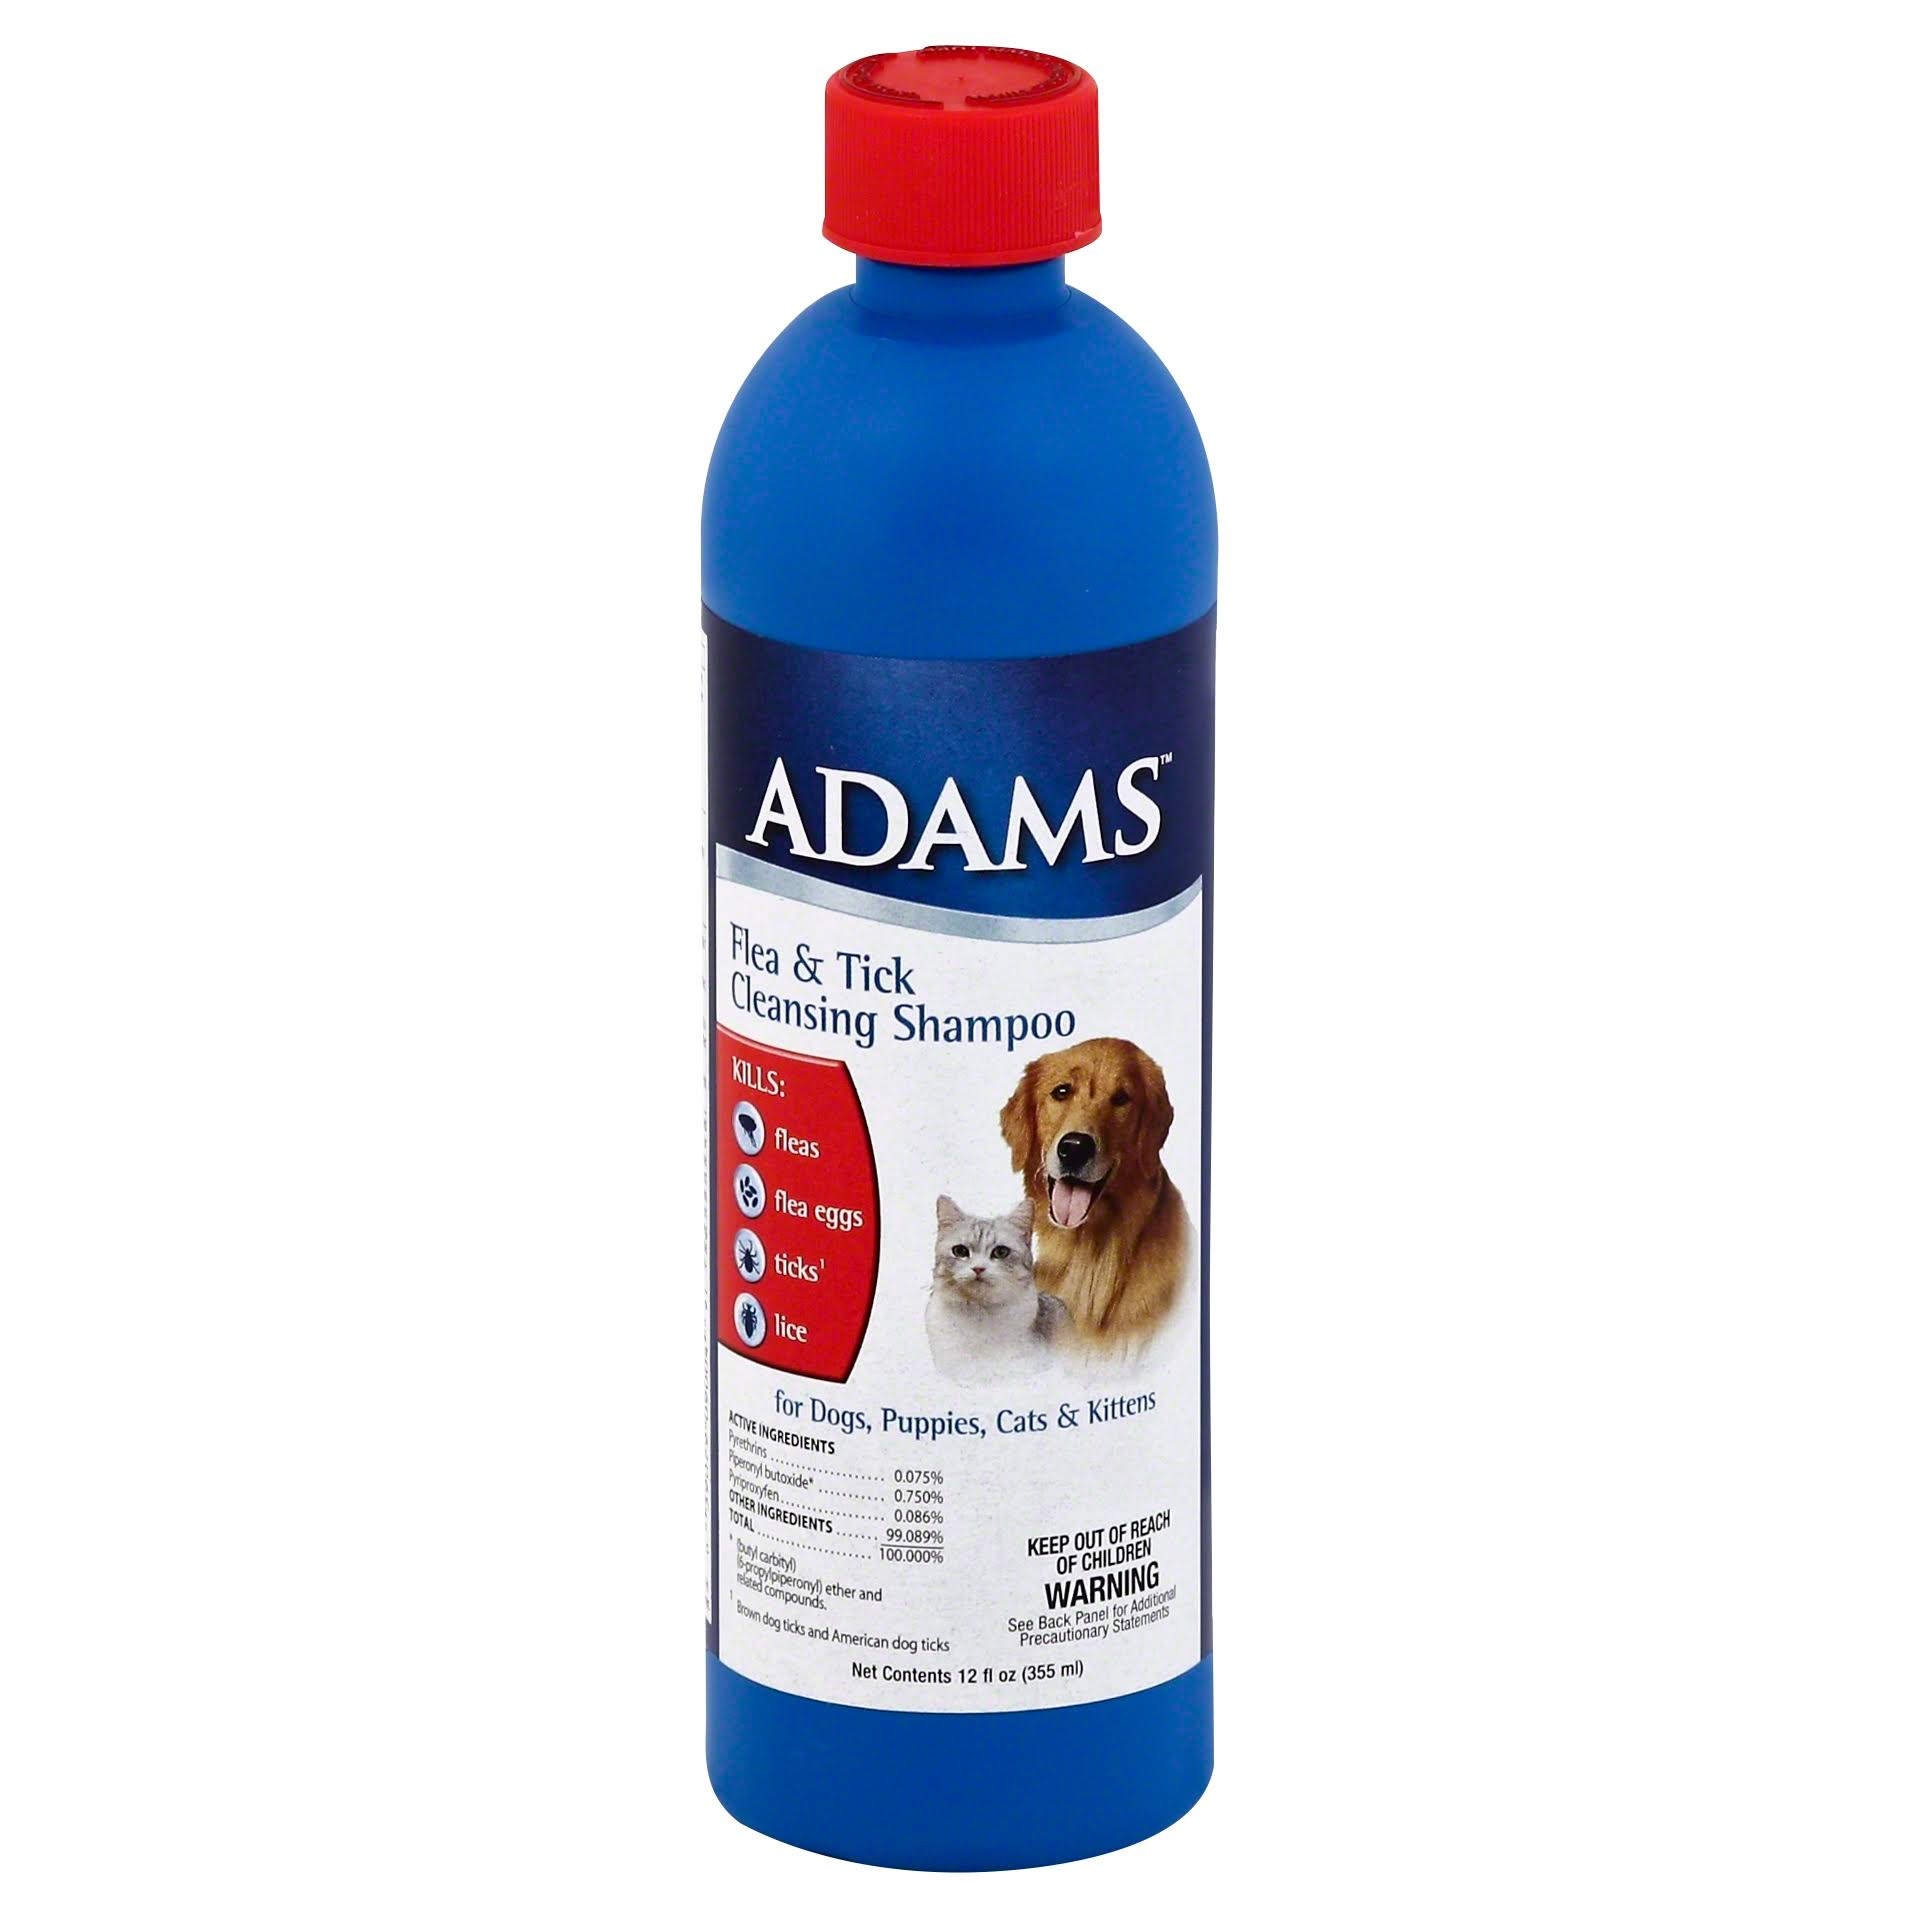 Adams Flea and Tick Cleansing Pet Shampoo - 12oz